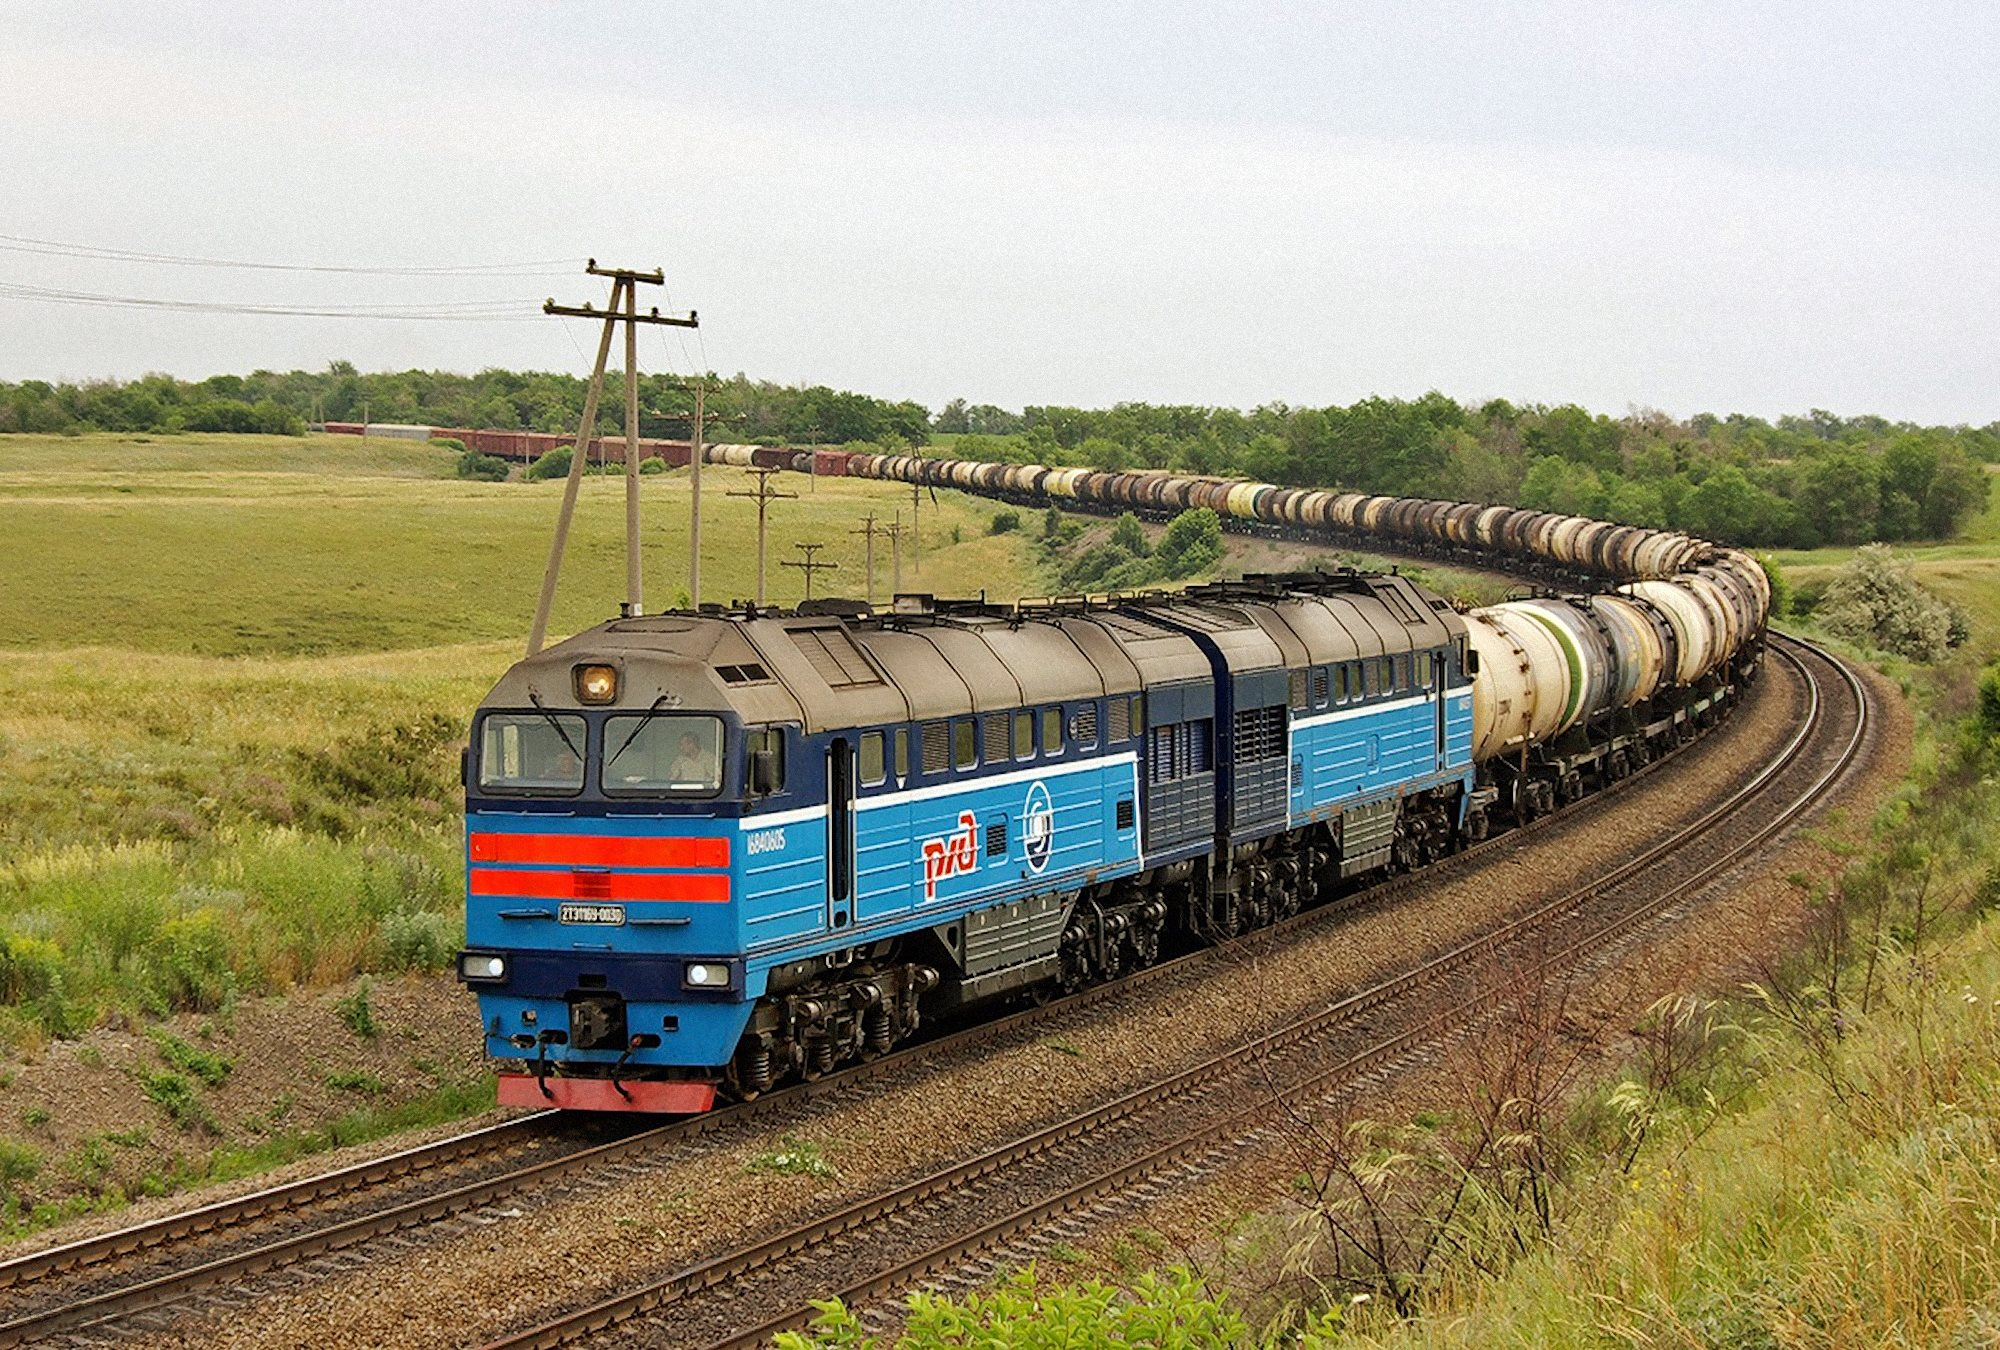 00 russian locomotive. 010715